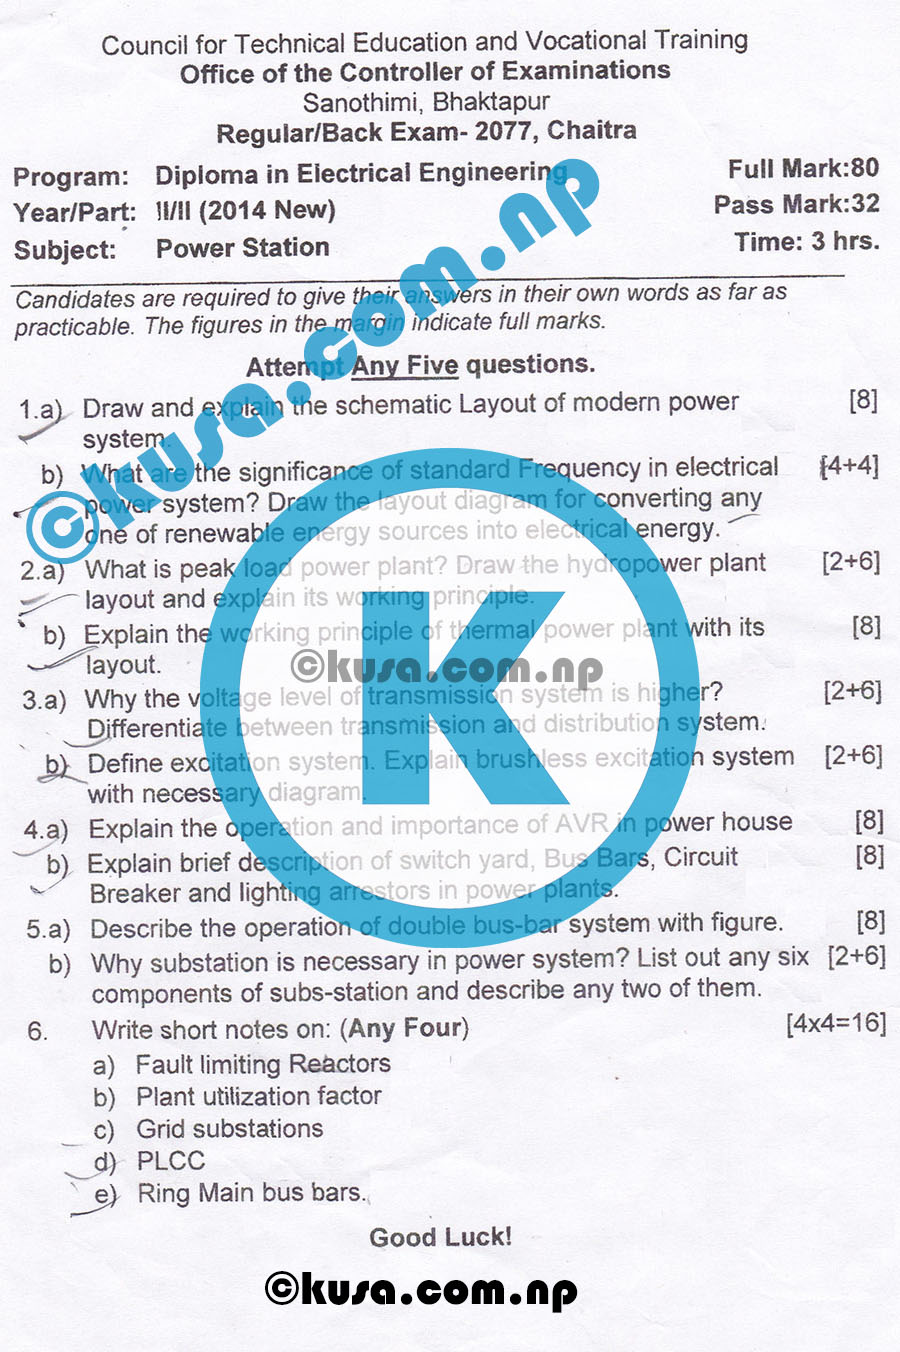 CTEVT-Diploma-Level-Second-Year-Second-Part-Power-Station-Question-Paper-2077